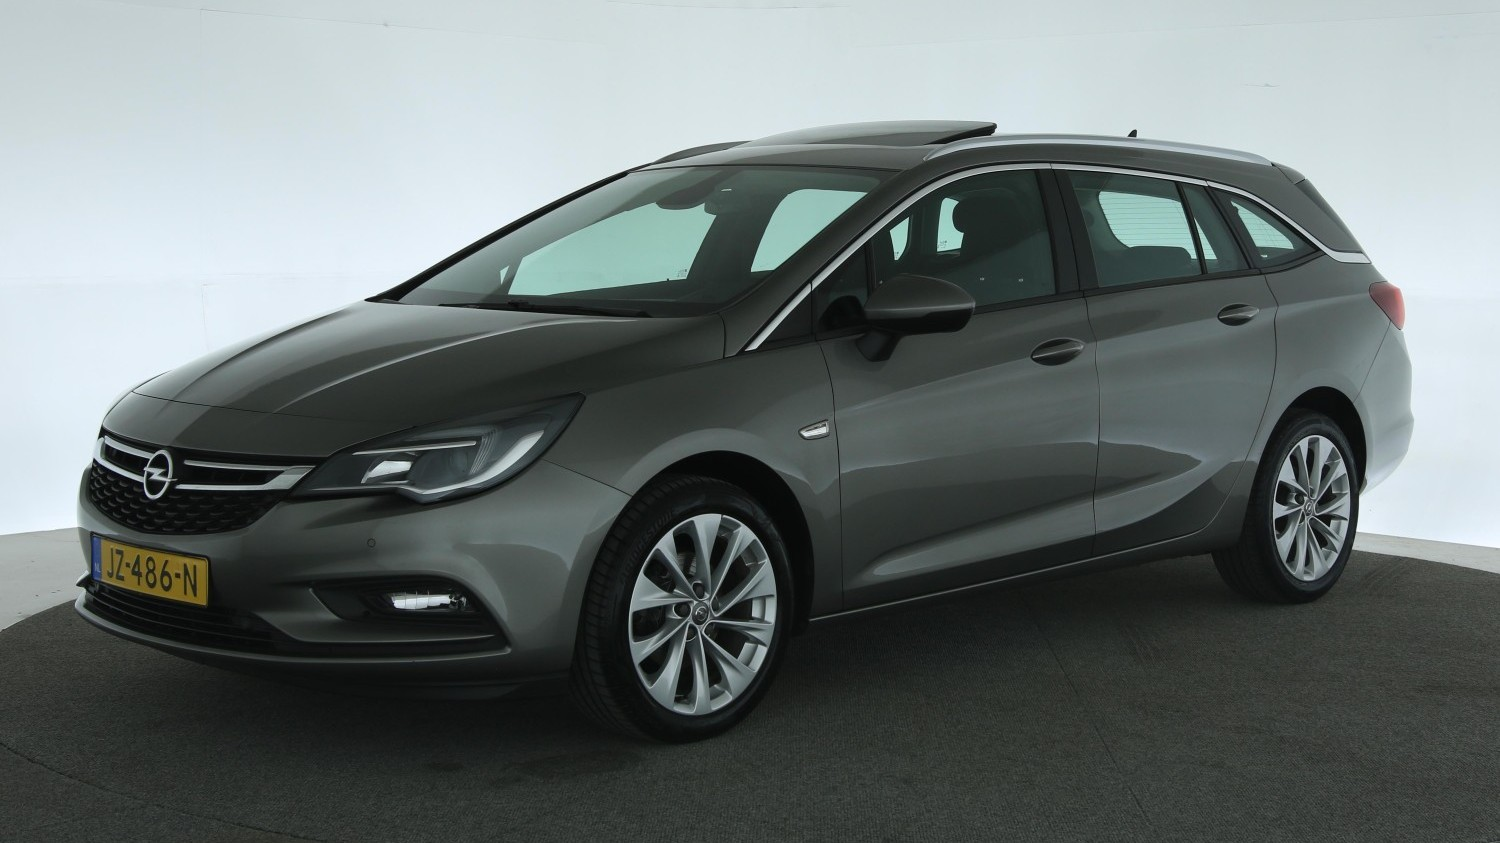 Opel Astra Station 2016 JZ-486-N 1